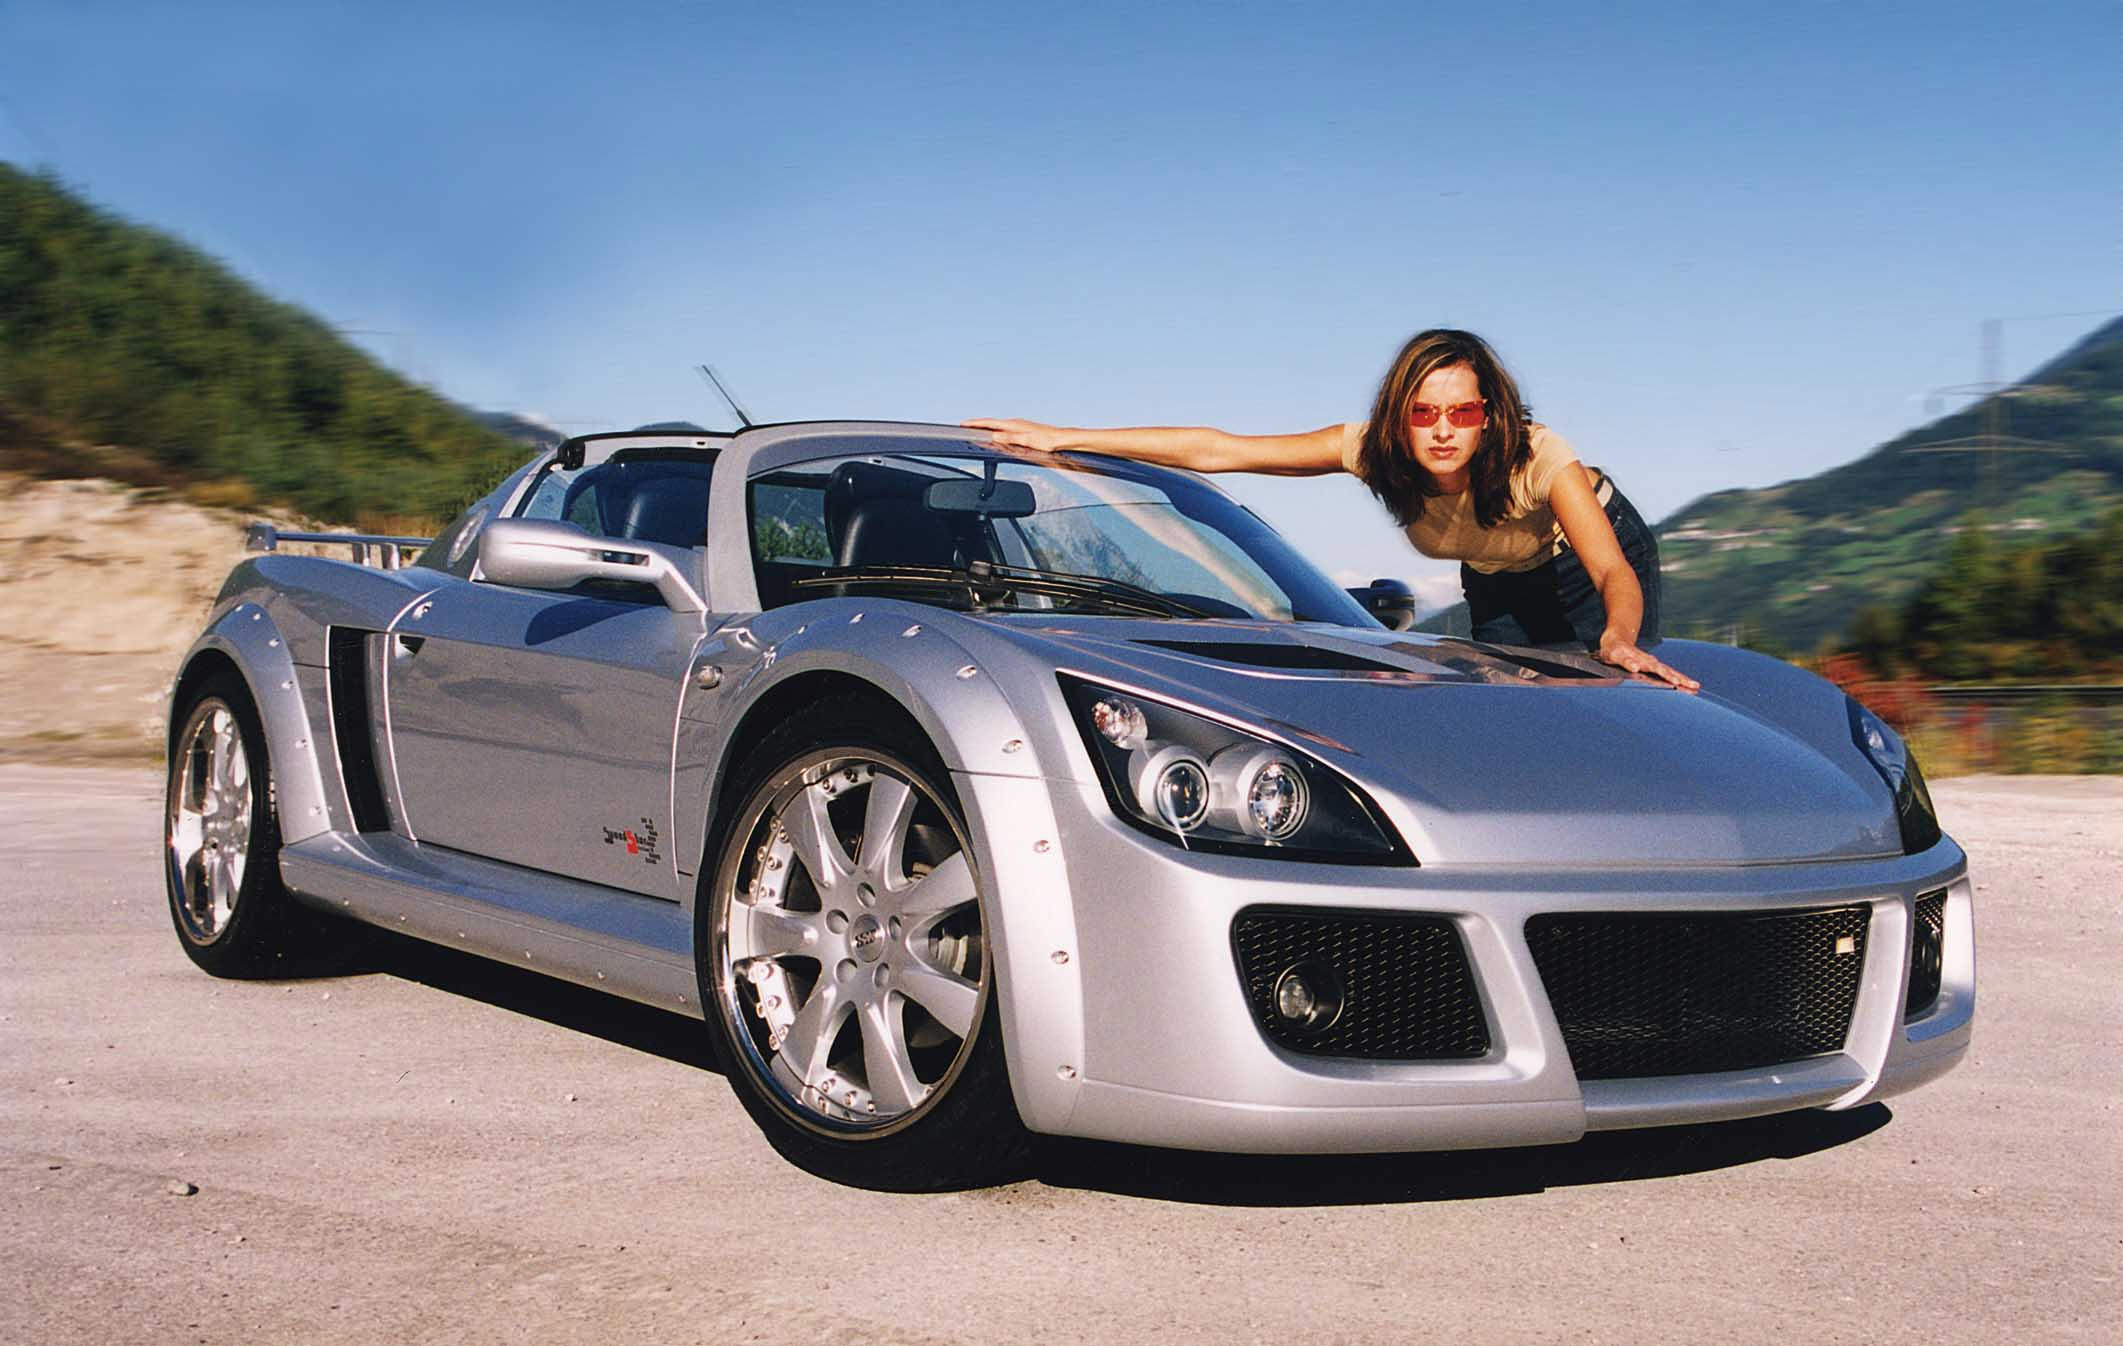 Opel Speedster Vauxhall Vx220 Are Really Underrated Cars